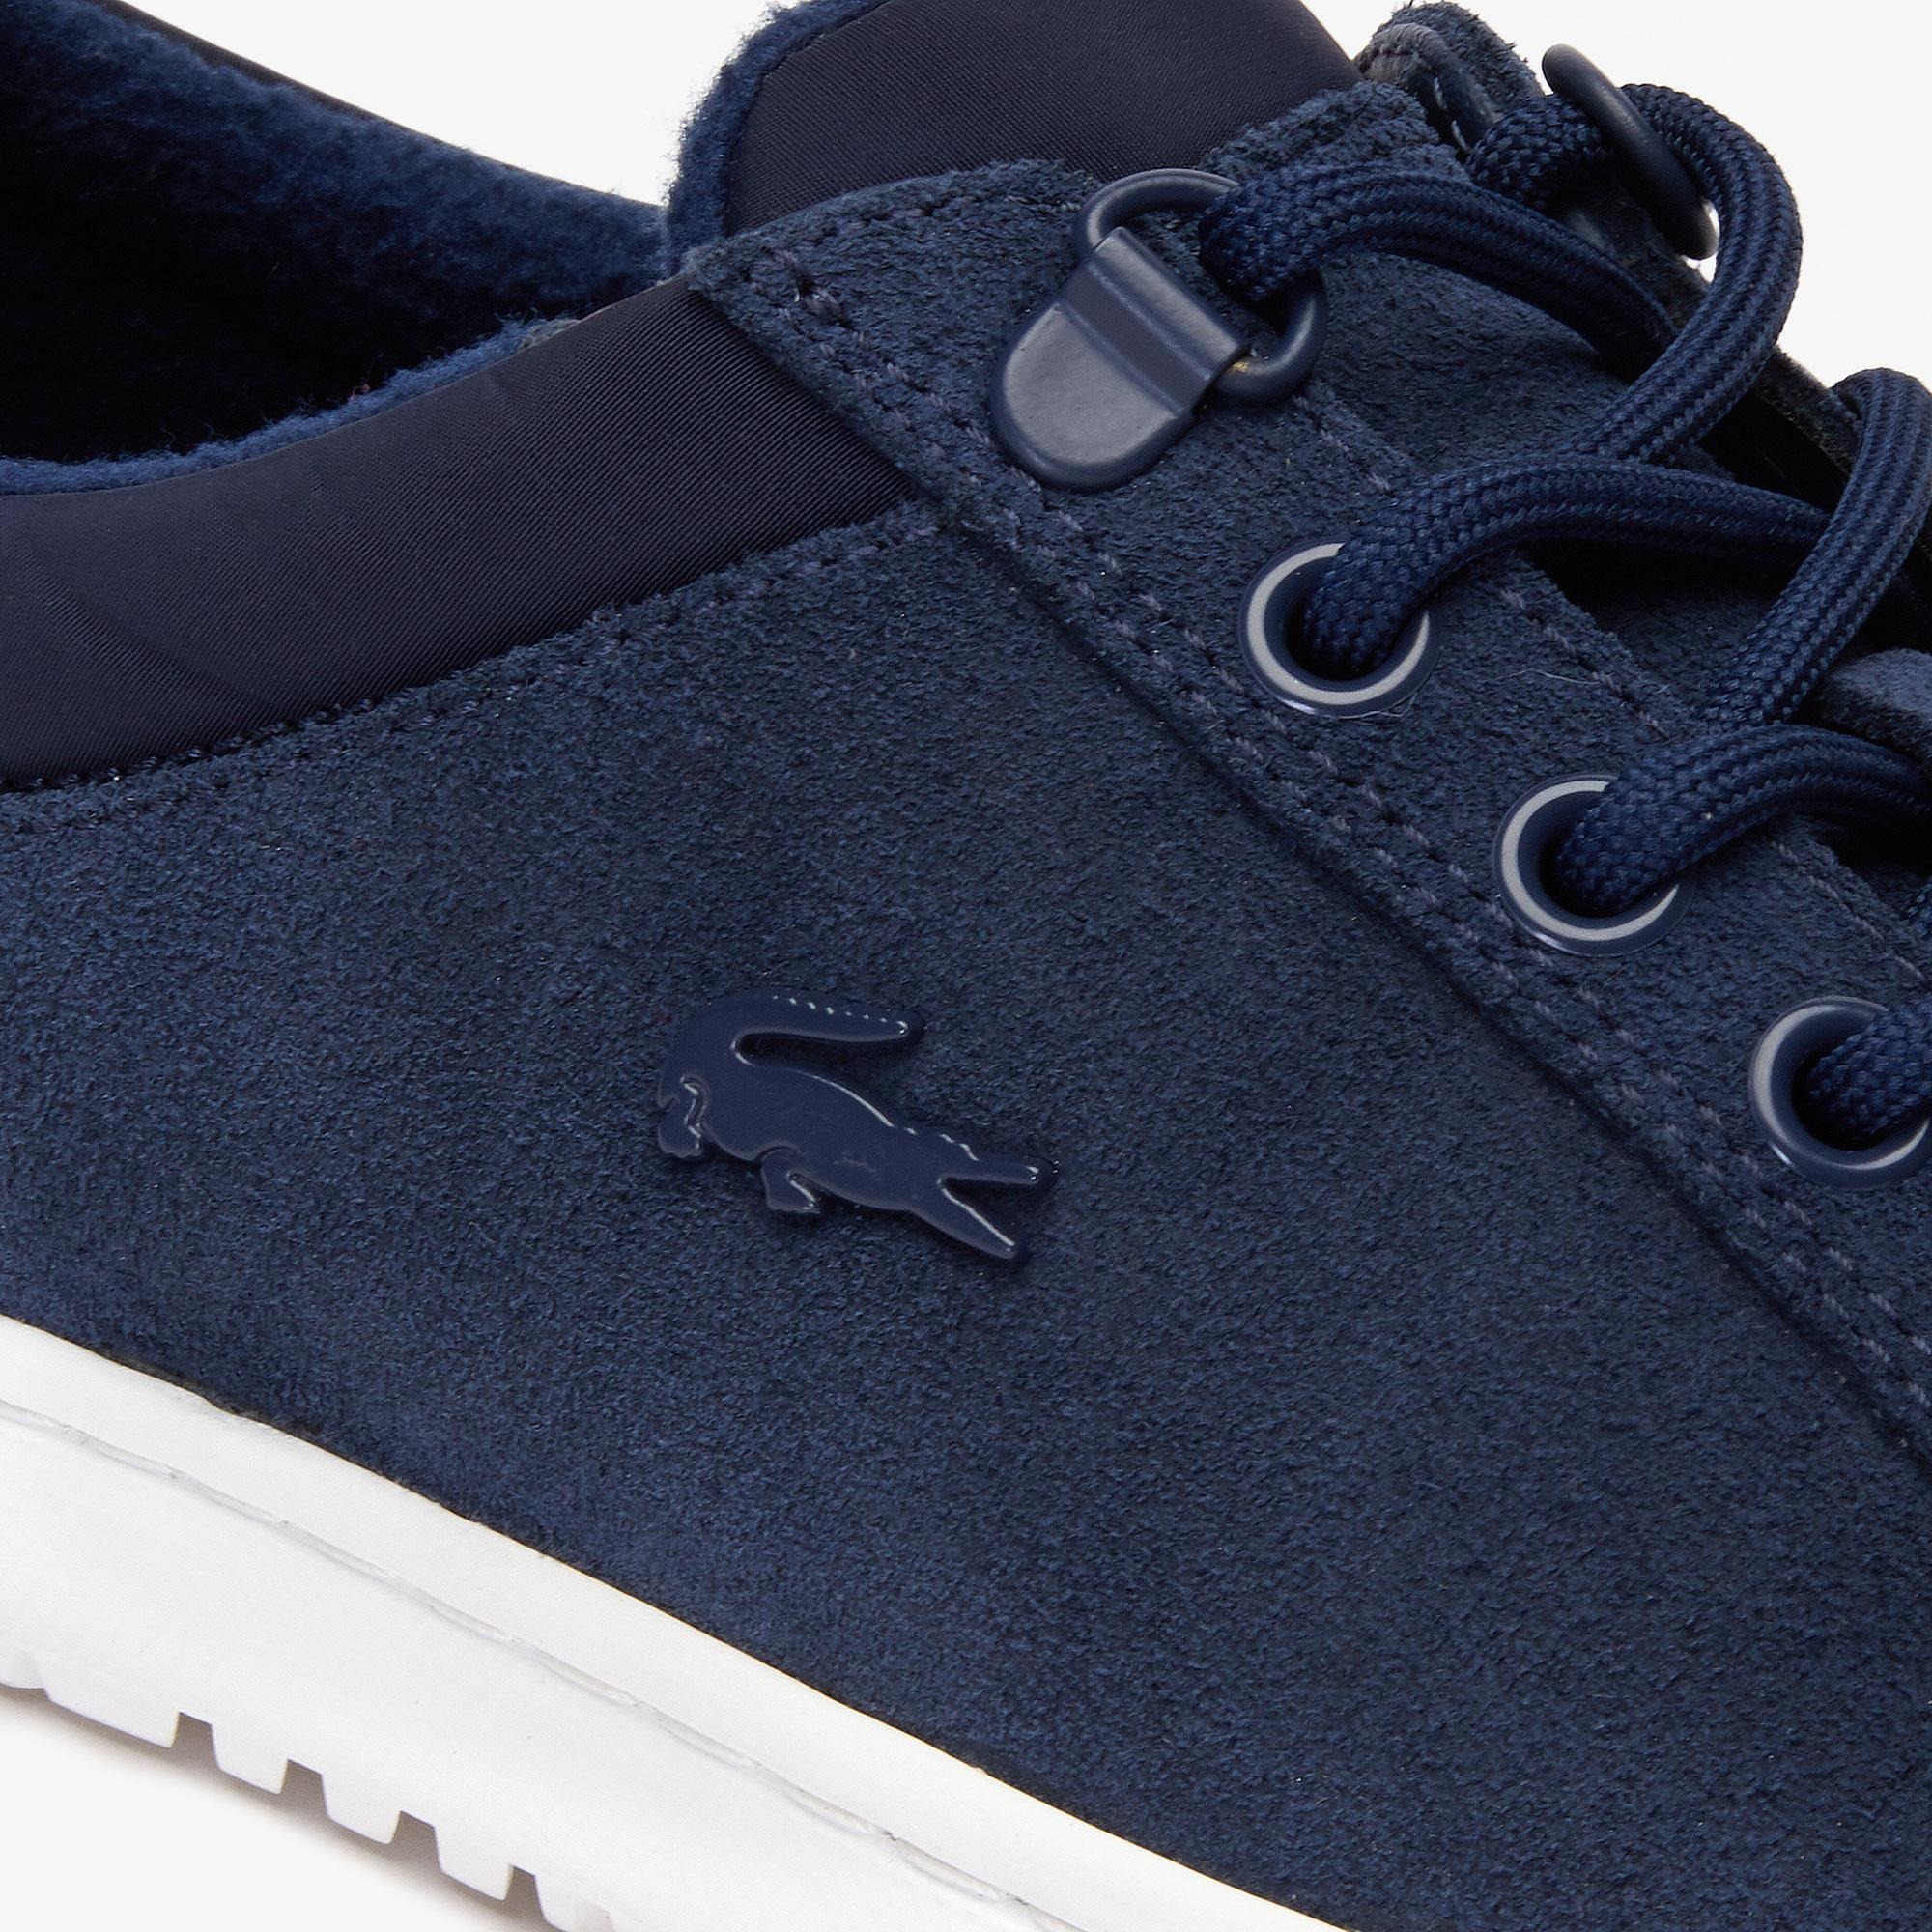 Lacoste Straightset Insulate 319 1 Women's Shoes